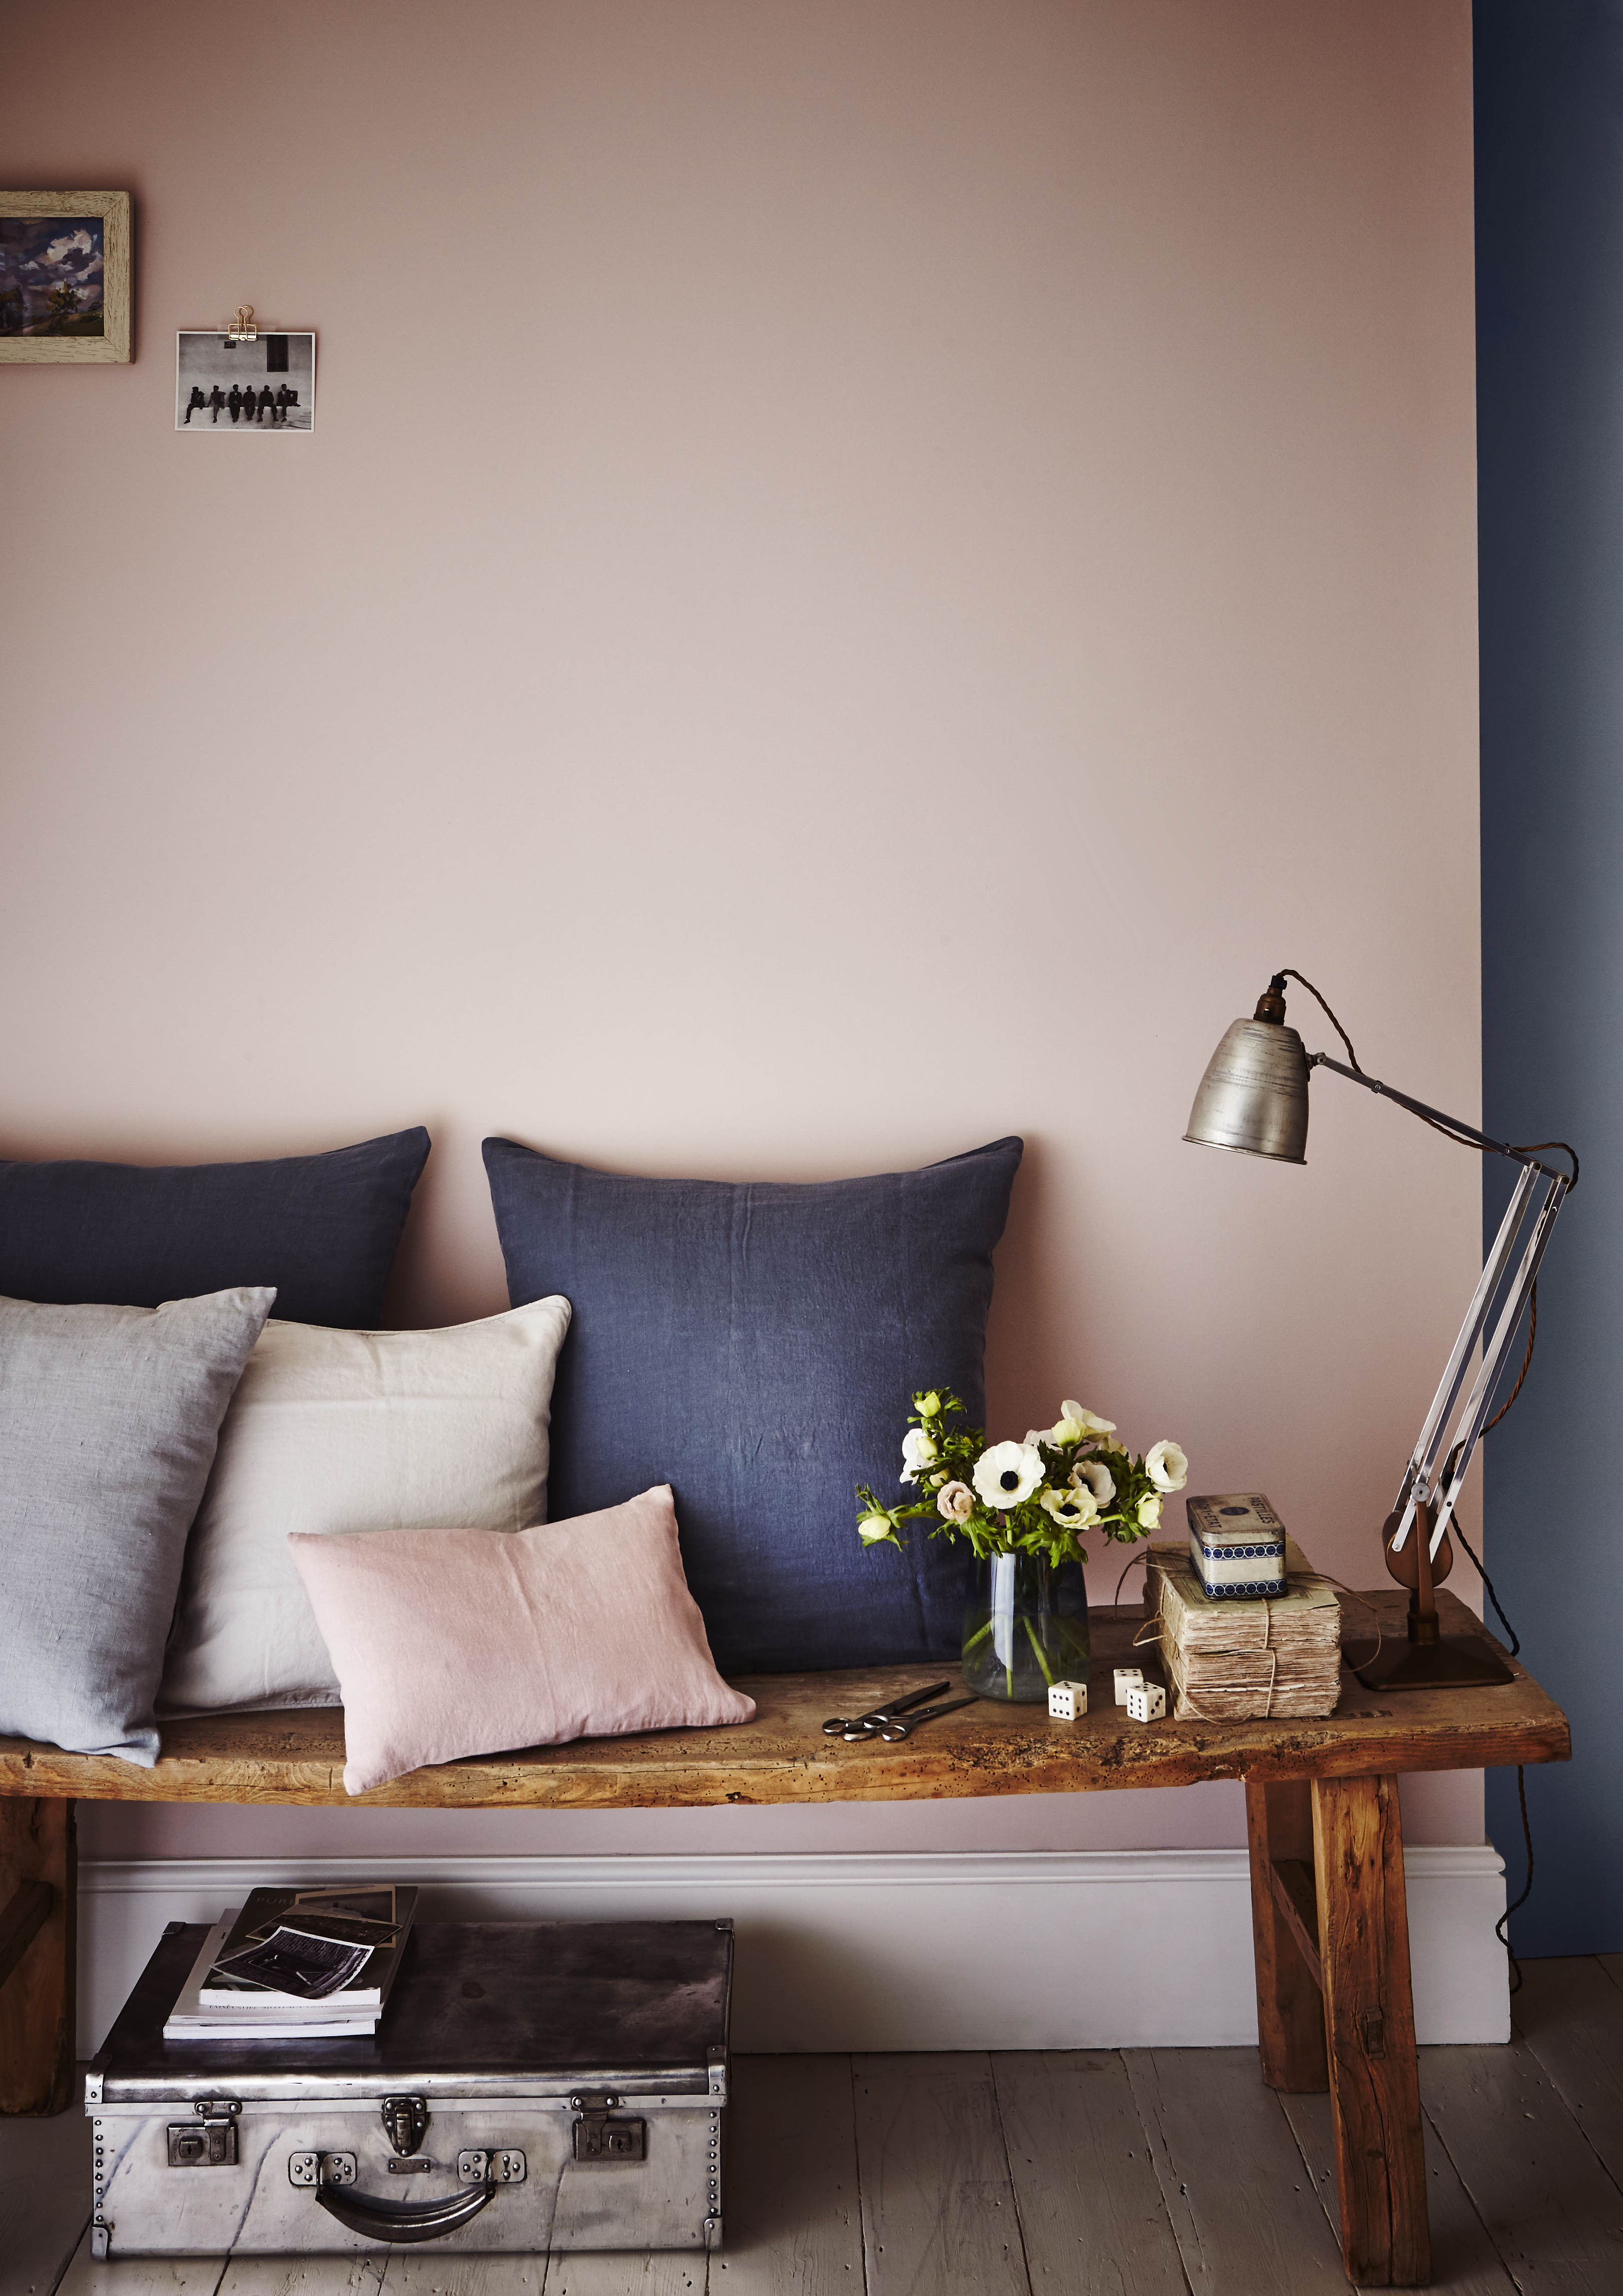 Hemsley new paint brand exclusively available at Homebase